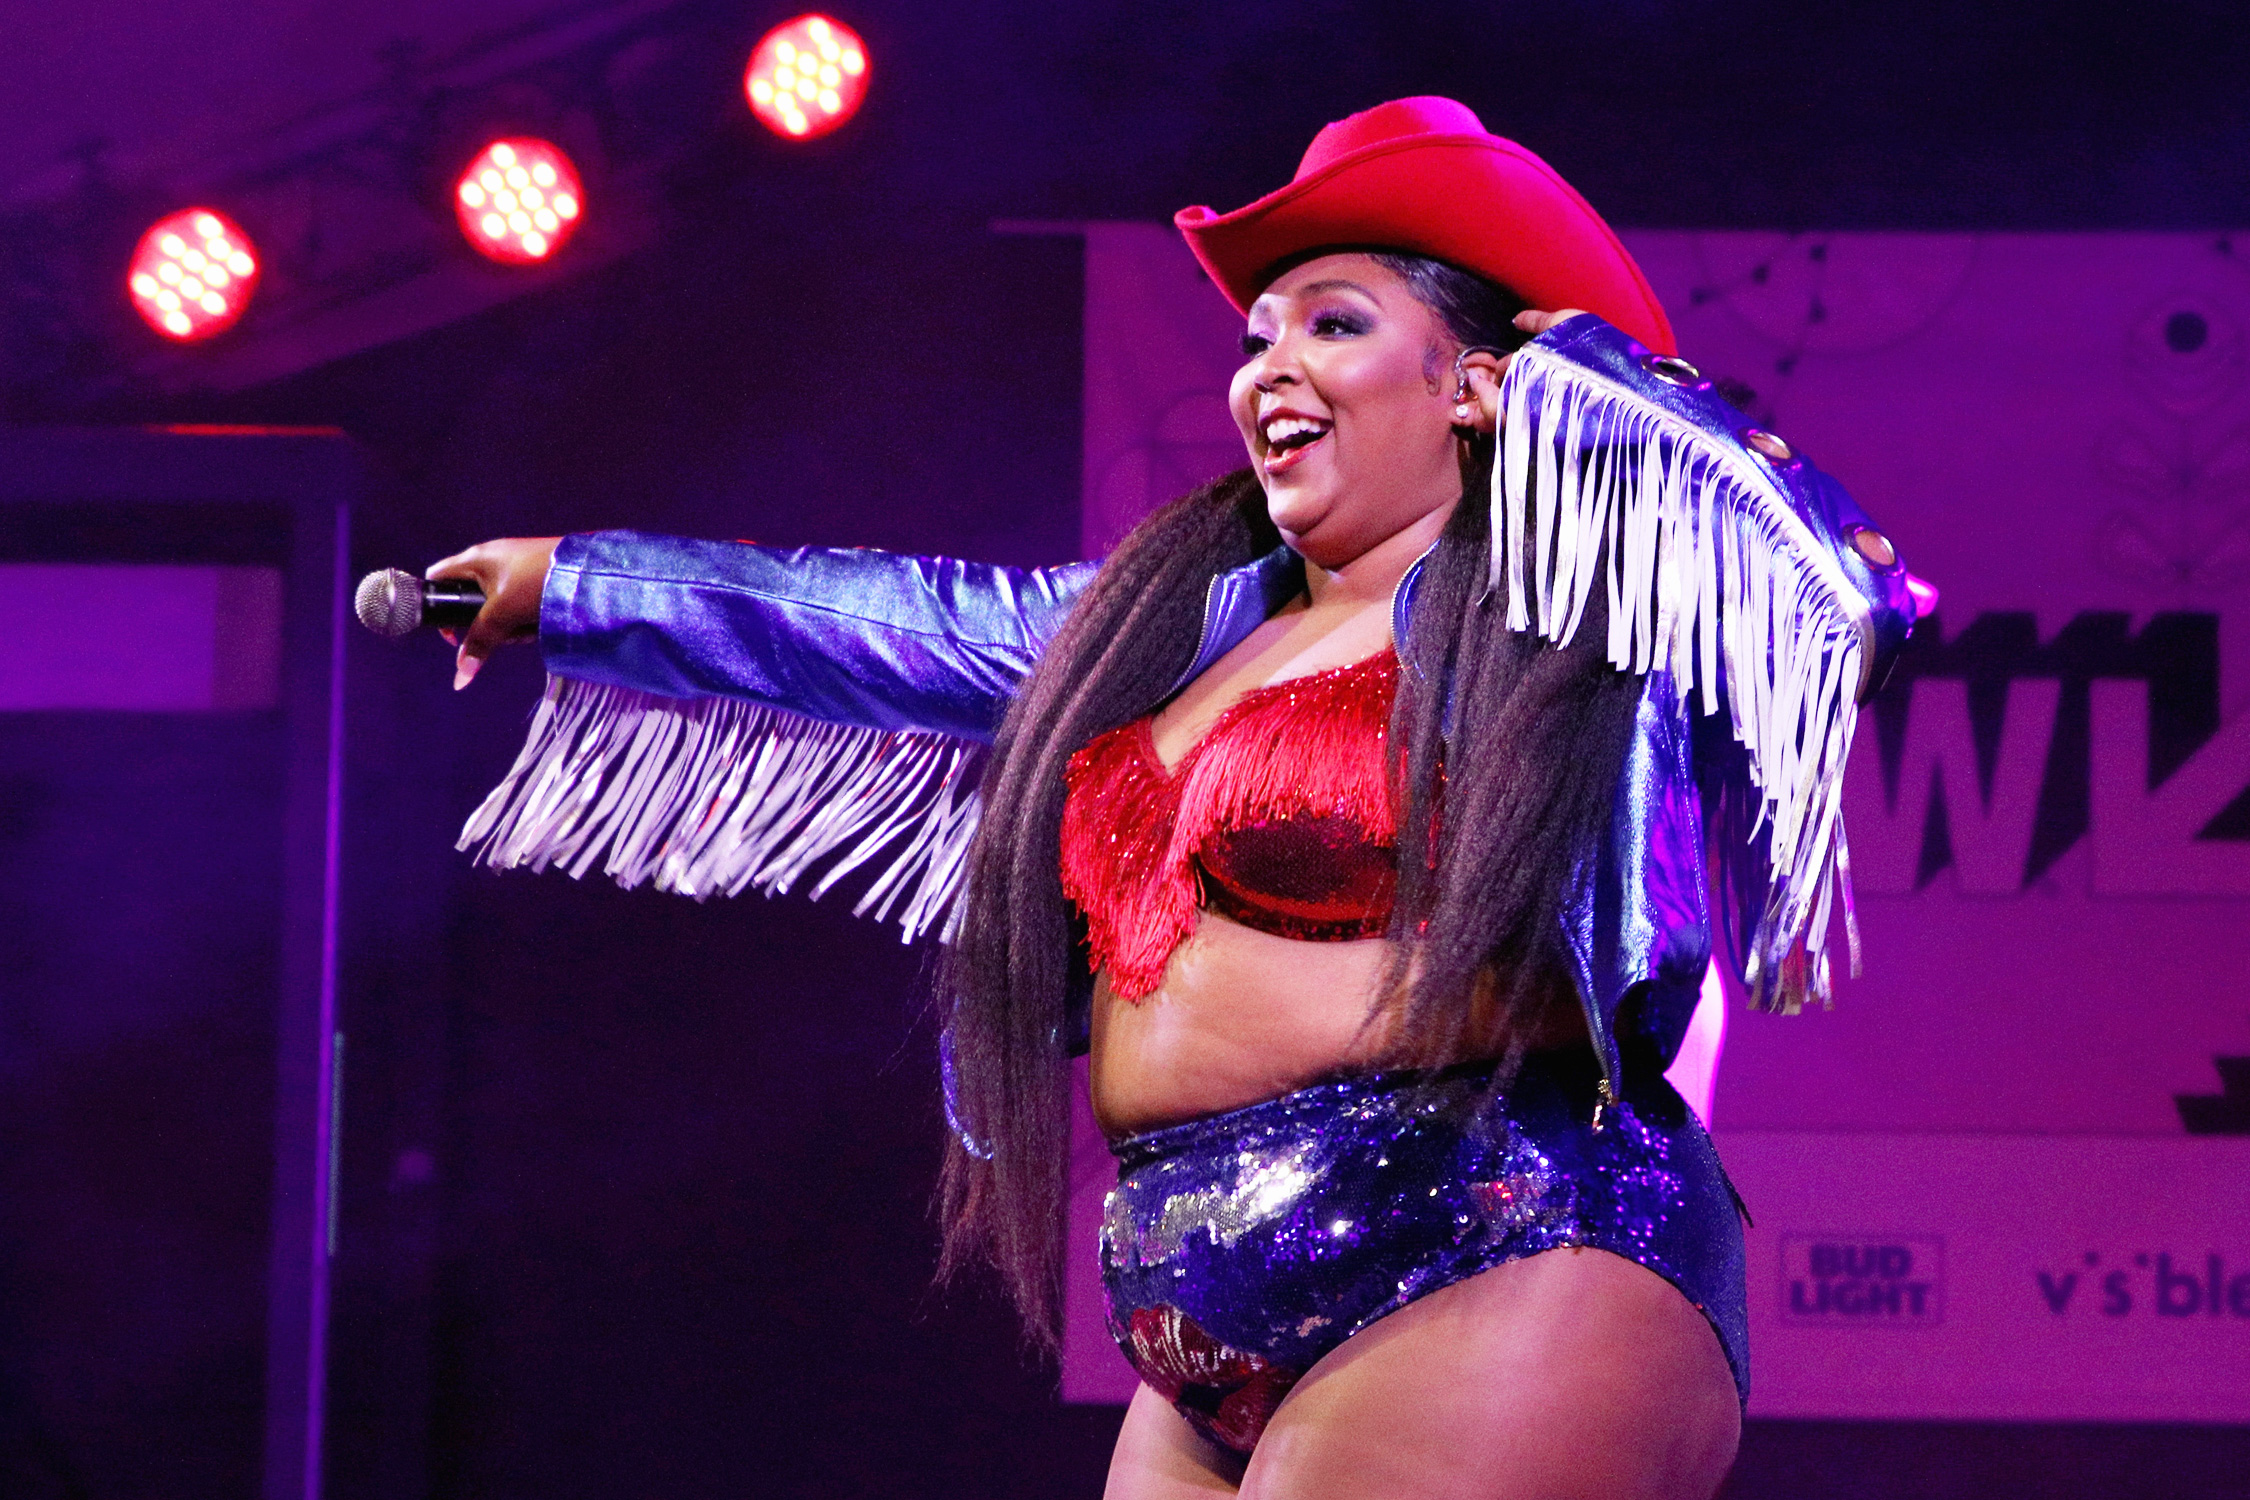 Lizzo performs during the 2019 SXSW Conference and Festivals at Stubb's Bar-B-Q on March 14, 2019 in Austin, Texas.